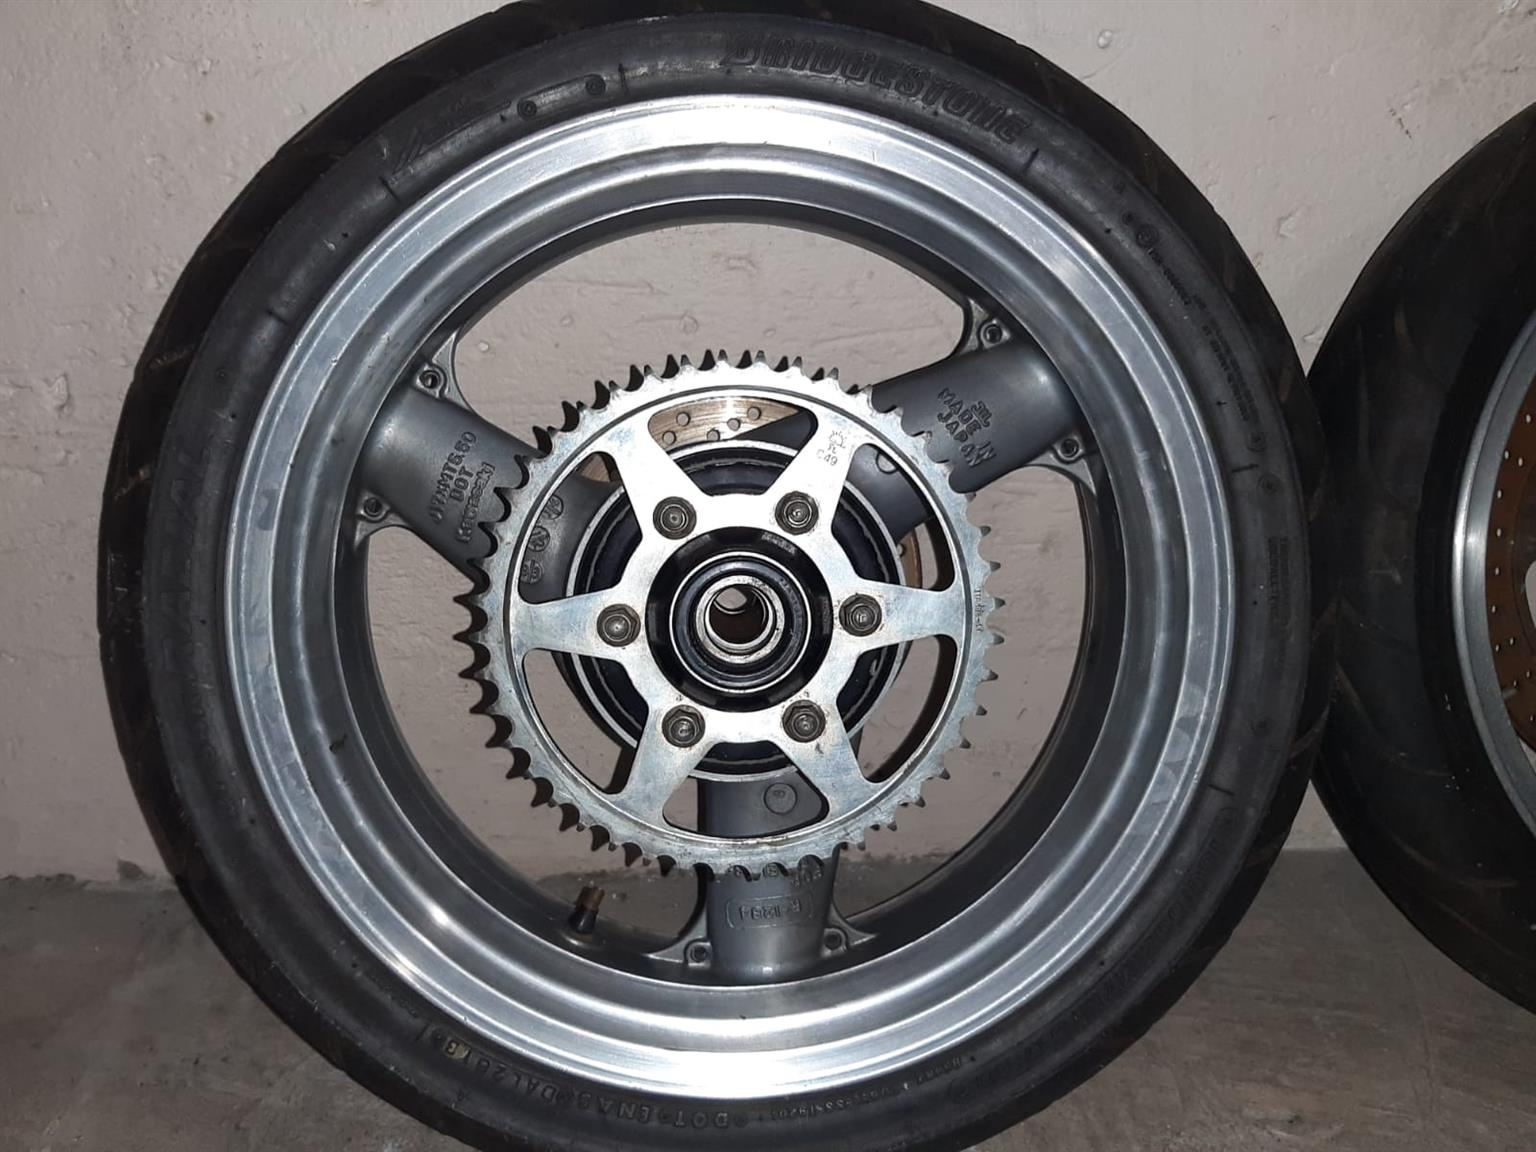 2012 Wheels, Rims and Tyres Other Wheels, Rims and Tyres